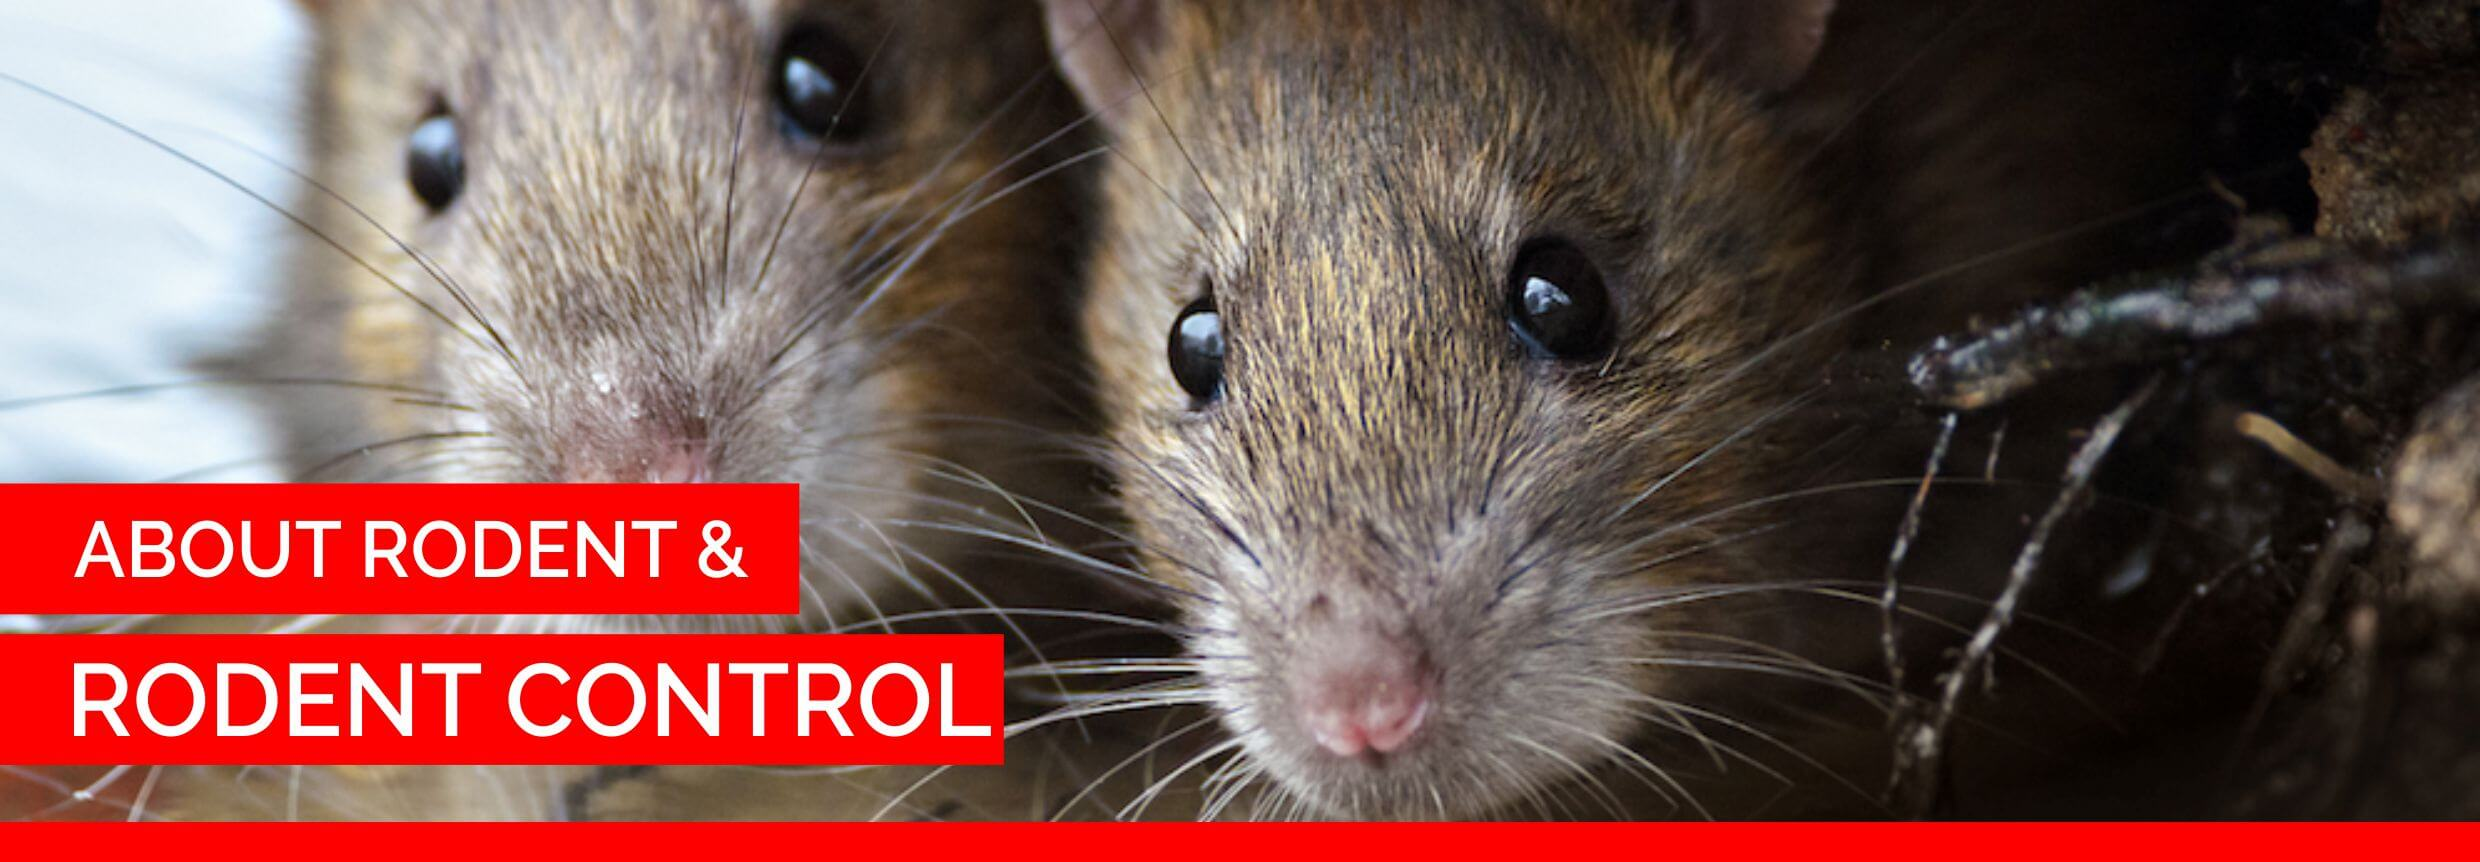 about rodent and rodent control